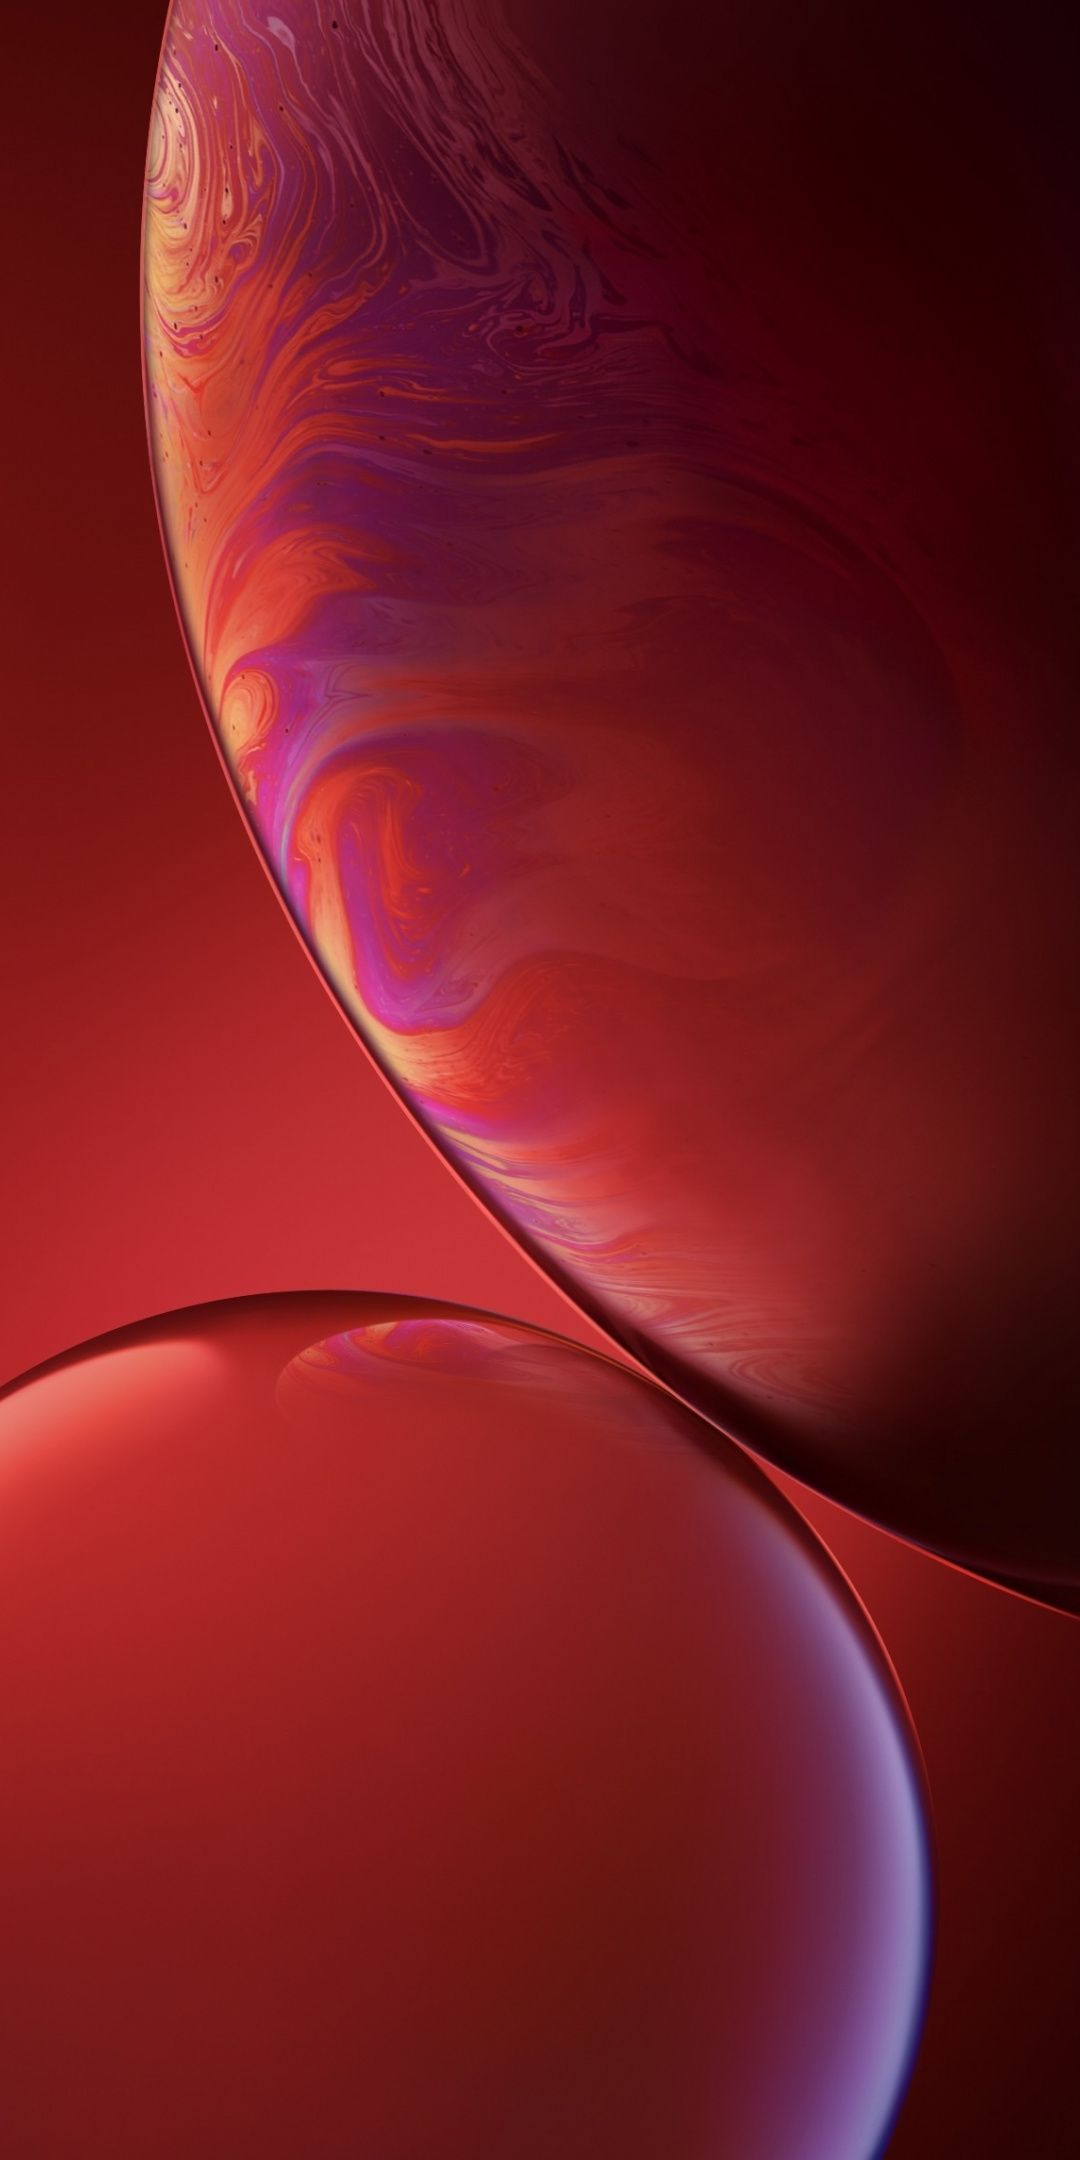 Bubbles Red Iphone Xr Ios 12 1080x2160 Wallpaper Iphone Red Wallpaper Apple Wallpaper Iphone Apple Iphone Wallpaper Hd